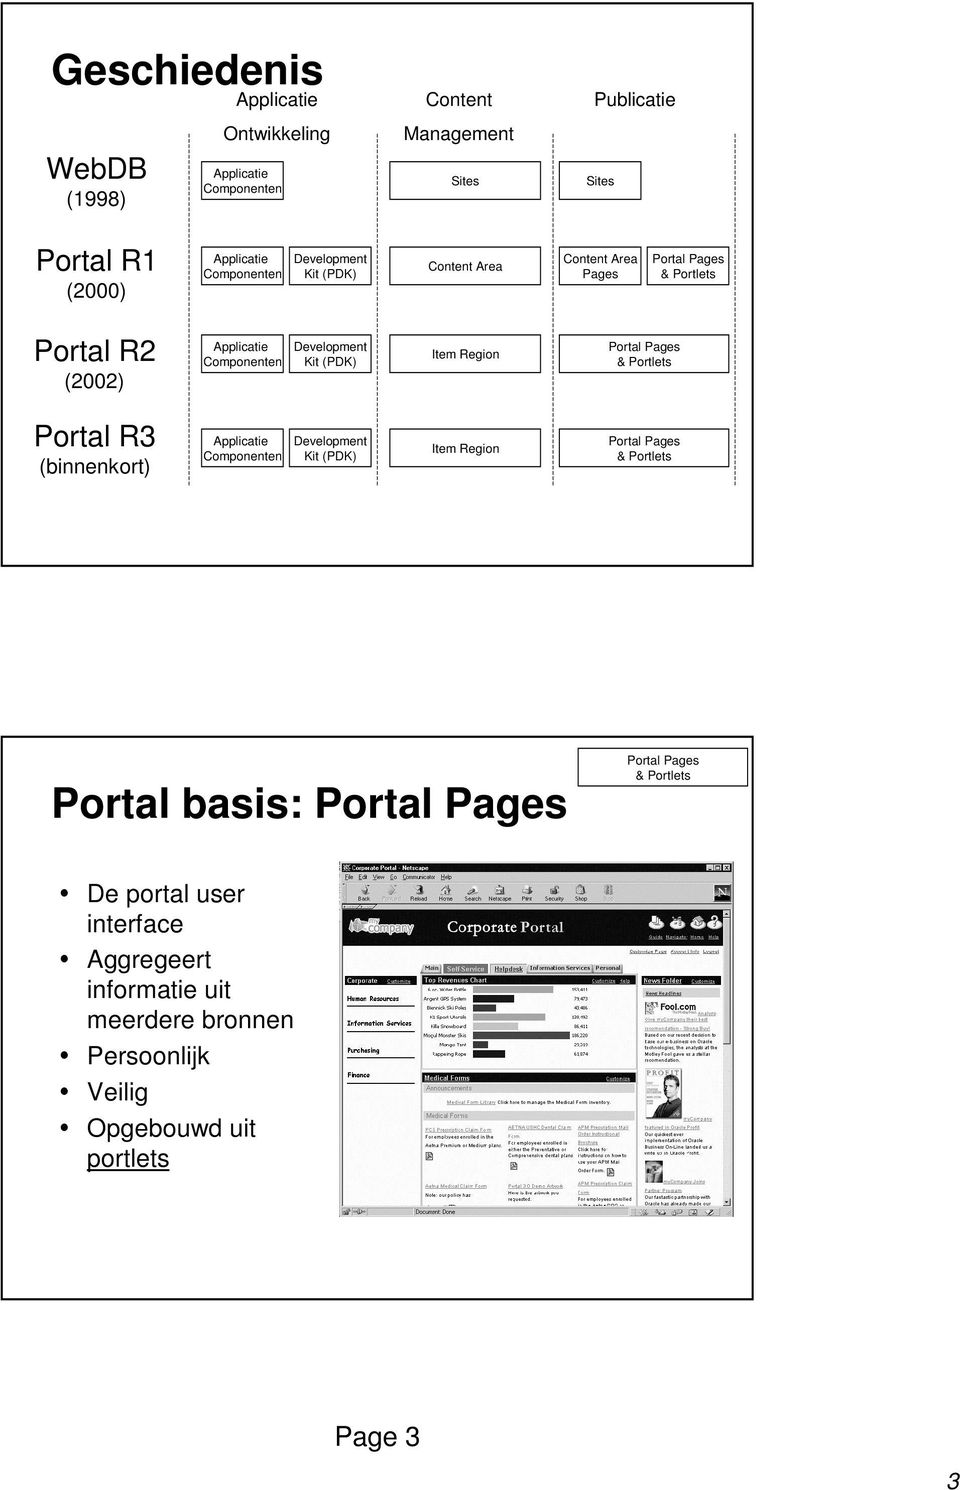 (PDK) Item Region Portal Pages & Portlets Portal R3 (binnenkort) Applicatie Componenten Development Kit (PDK) Item Region Portal Pages & Portlets